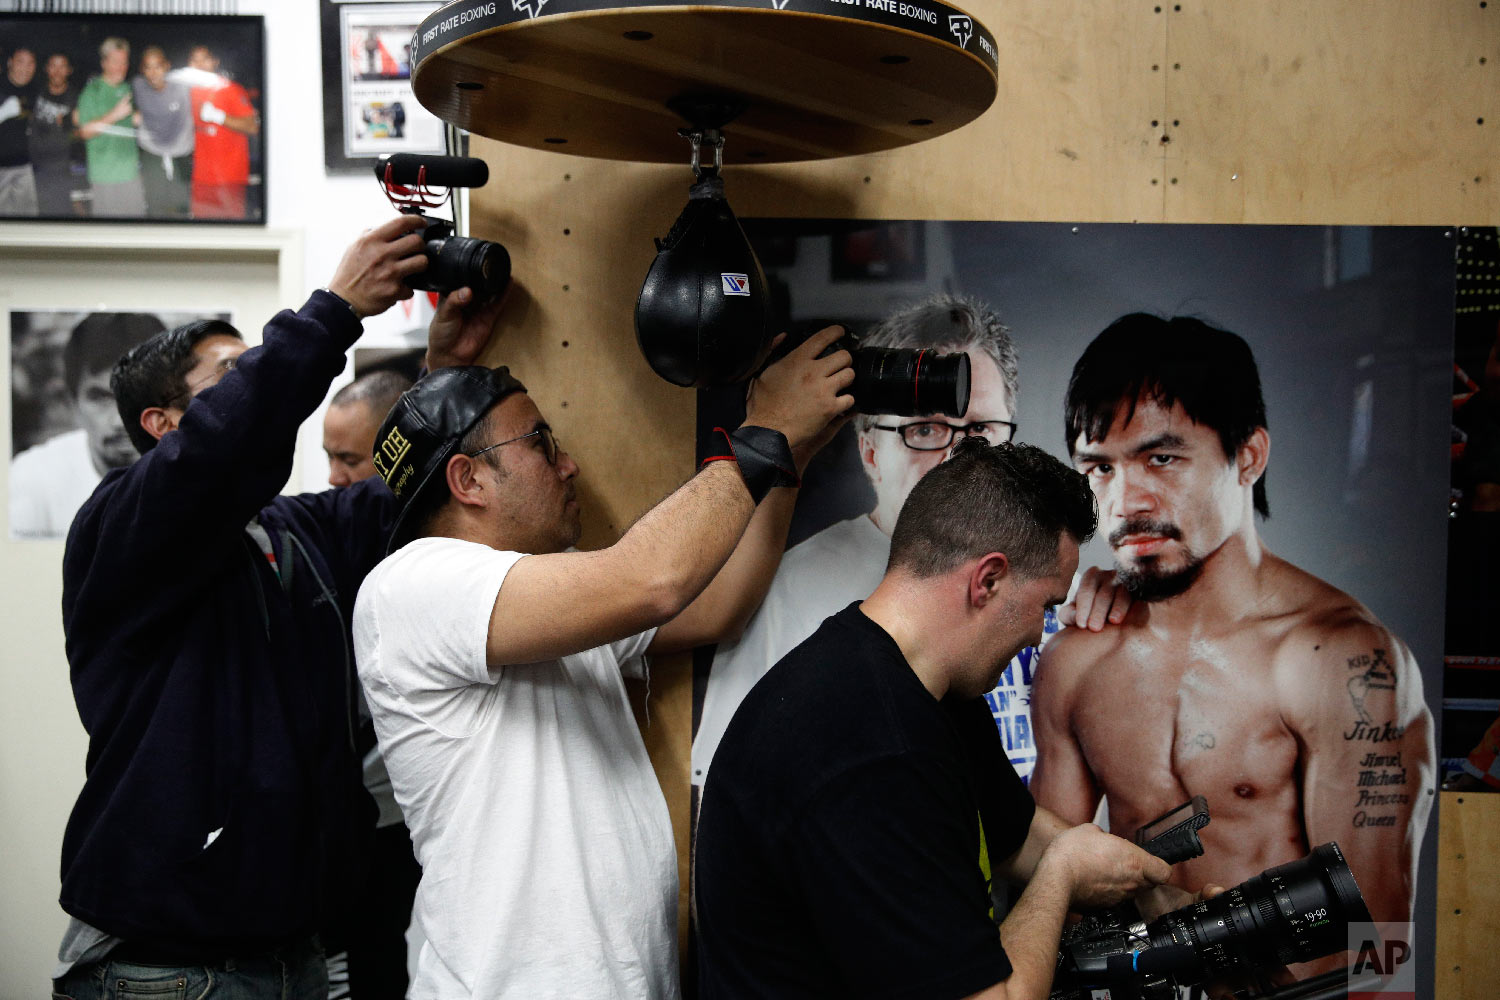 Film production crew members record as boxer Manny Pacquiao, not pictured, hits a speed bag at the Wild Card Boxing Club on Jan. 14, 2019, in Los Angeles. (AP Photo/Jae C. Hong)